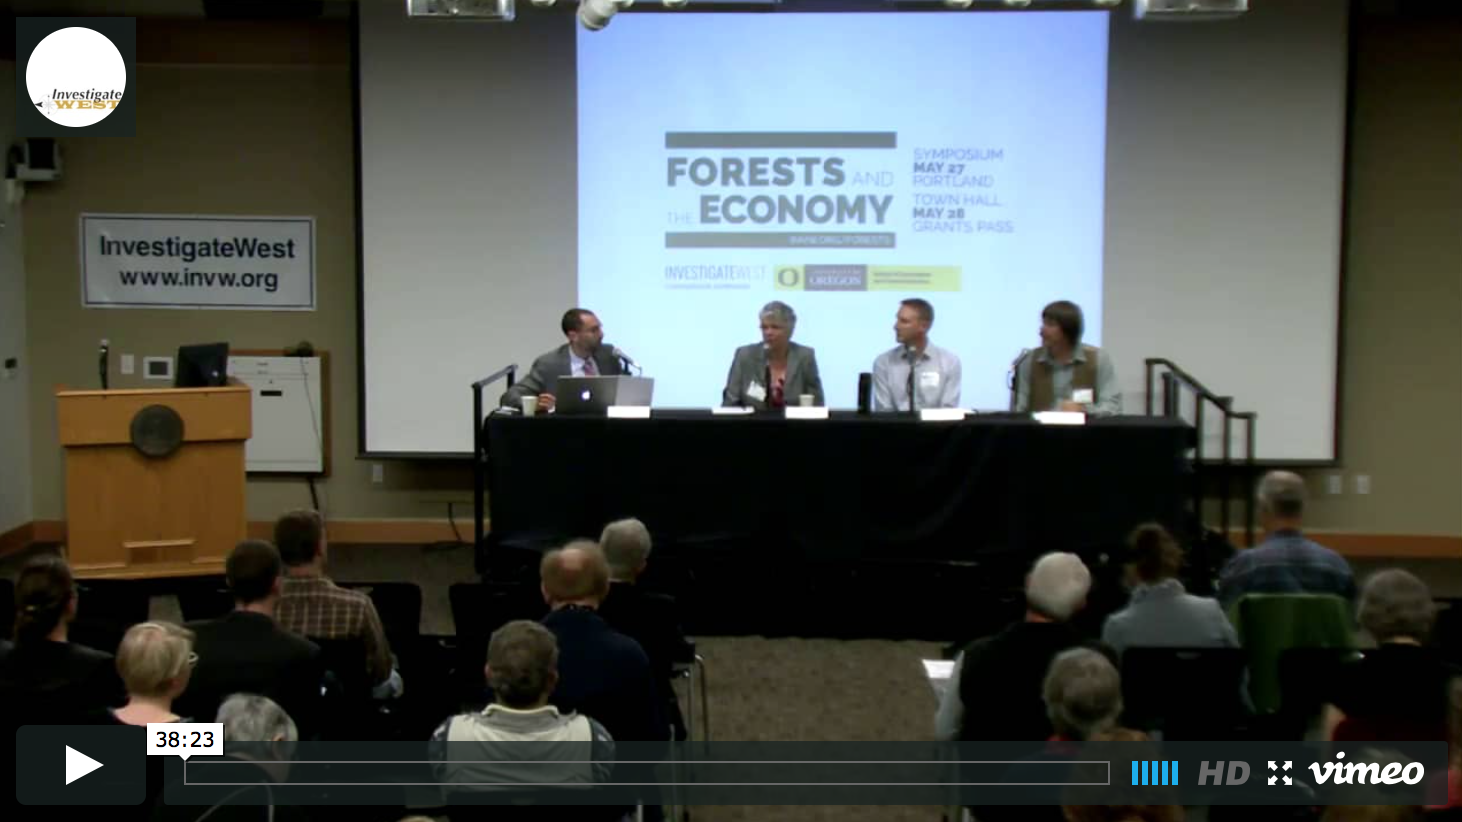 Watch clips from Oregon Forests and the Economy Symposium